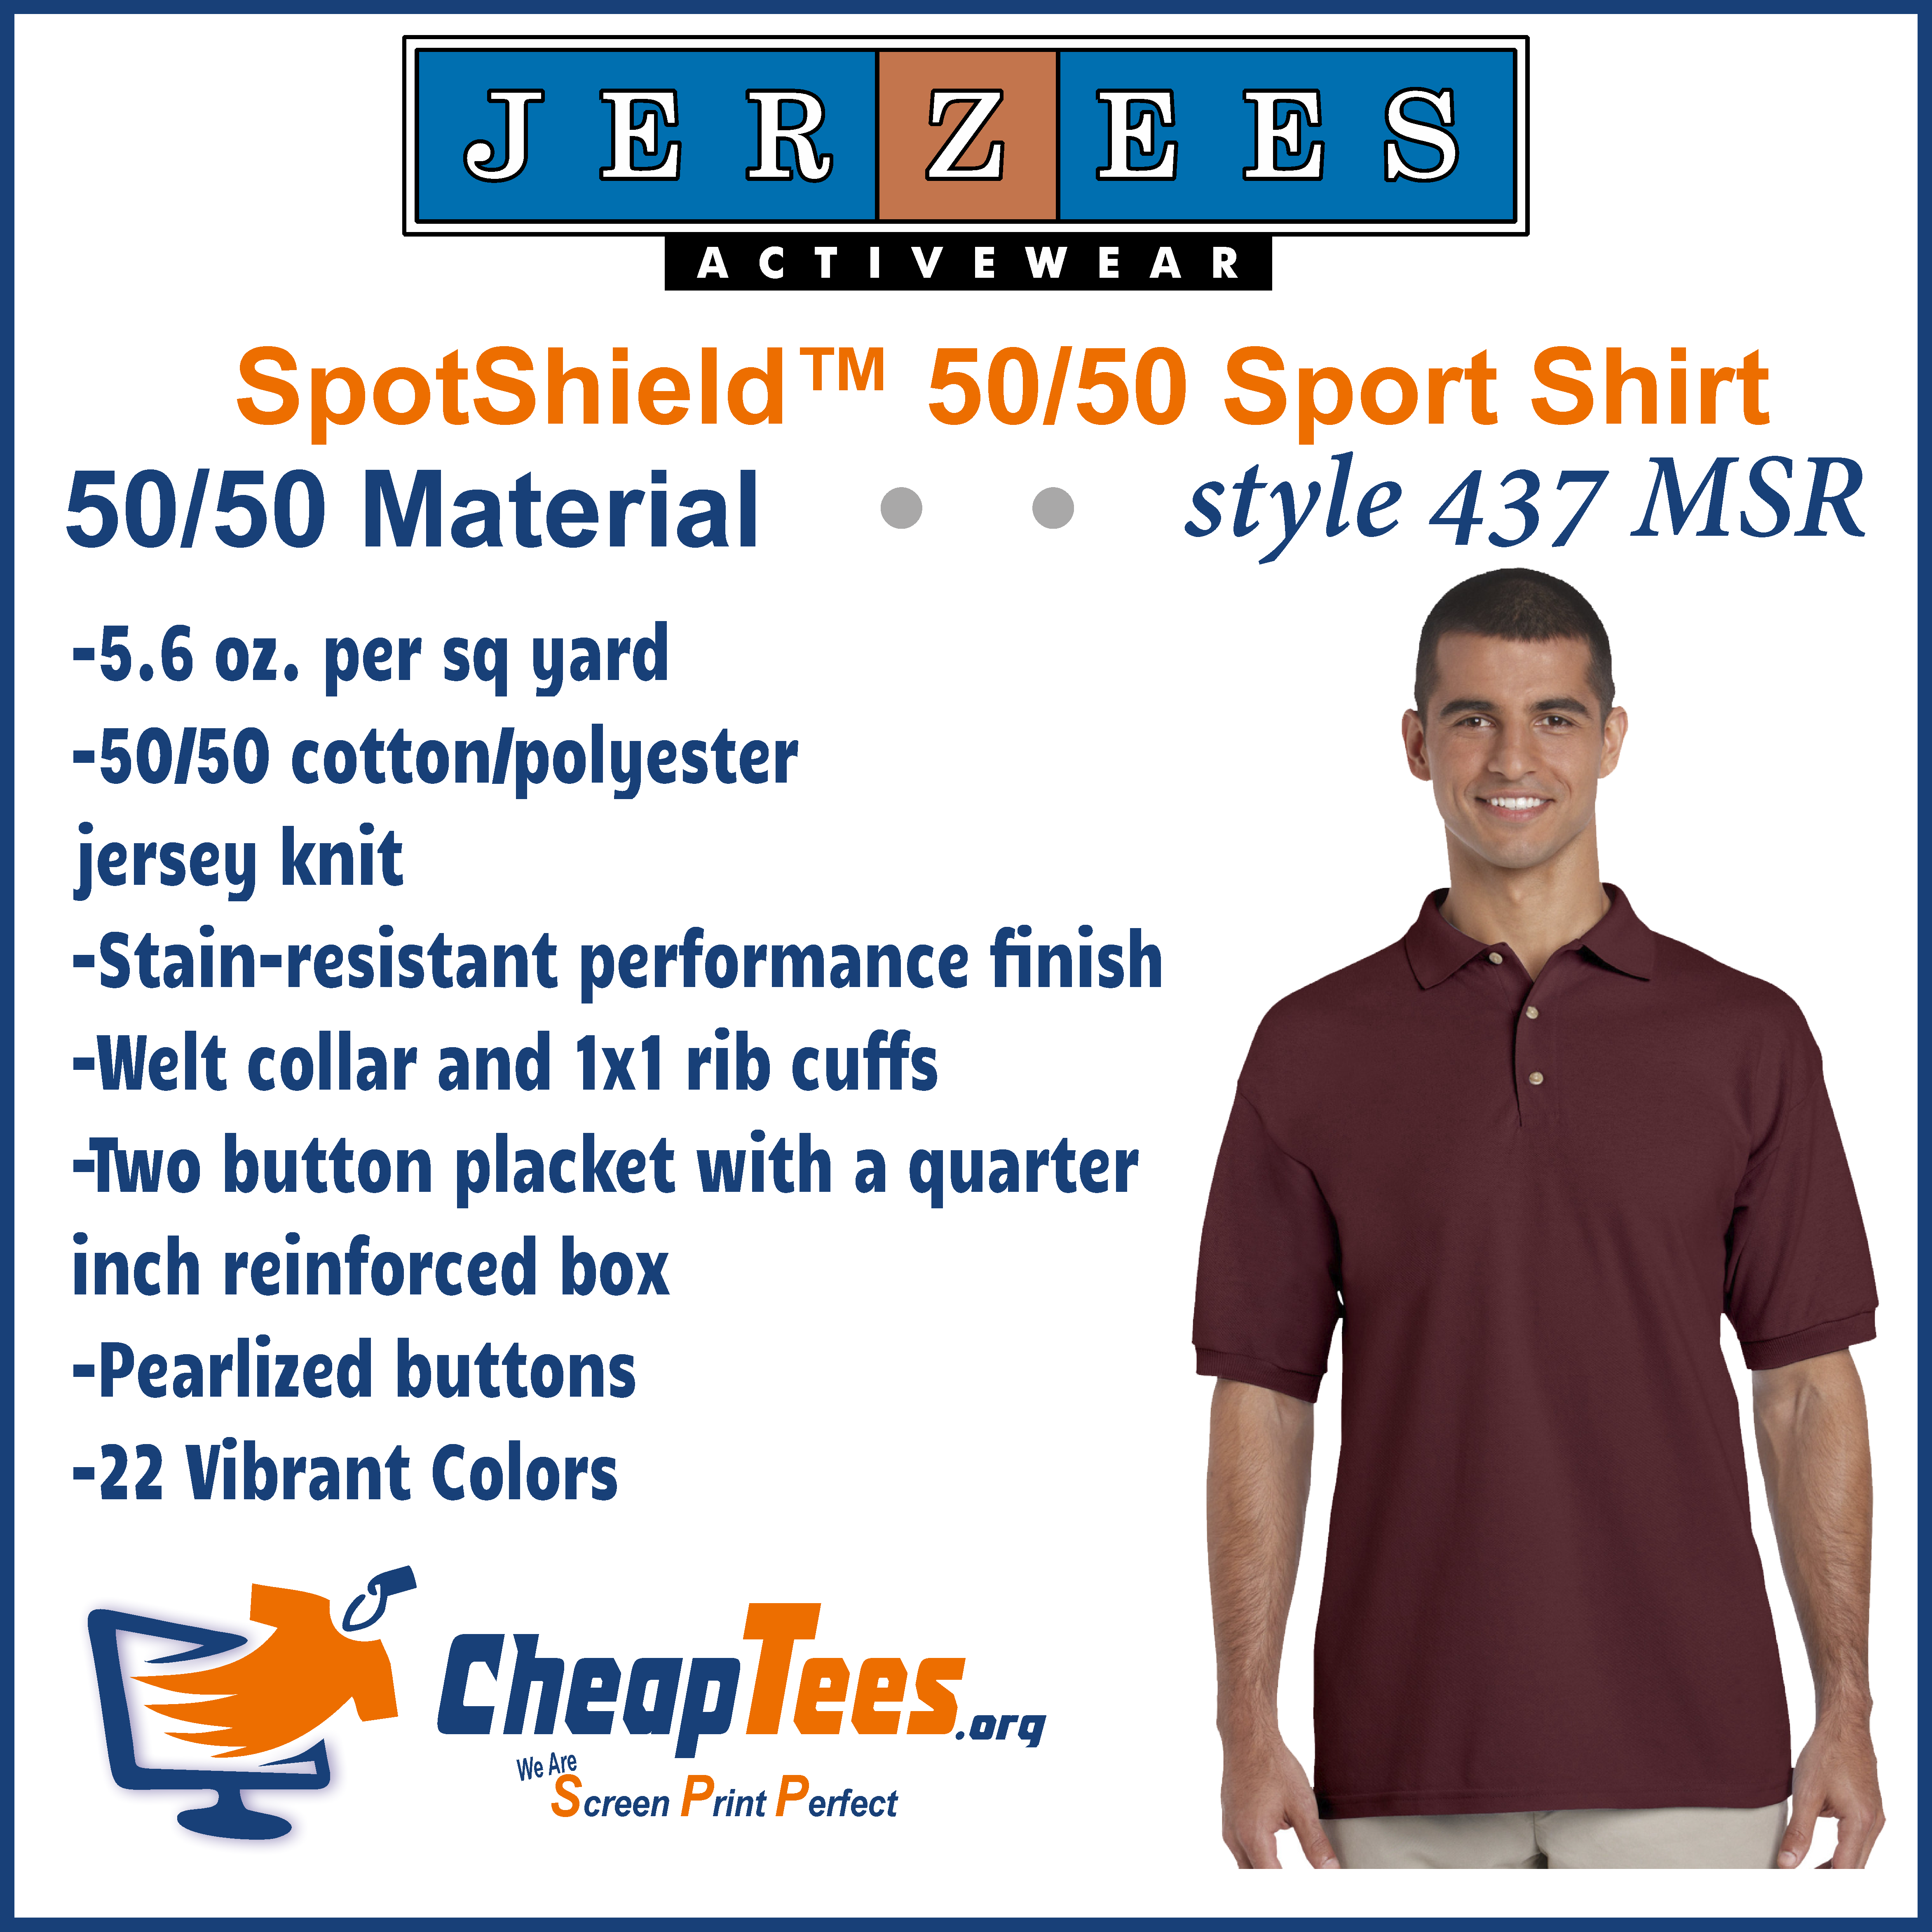 Cheap tees coupons near me in springfield 8coupons for Silk screen shirts near me